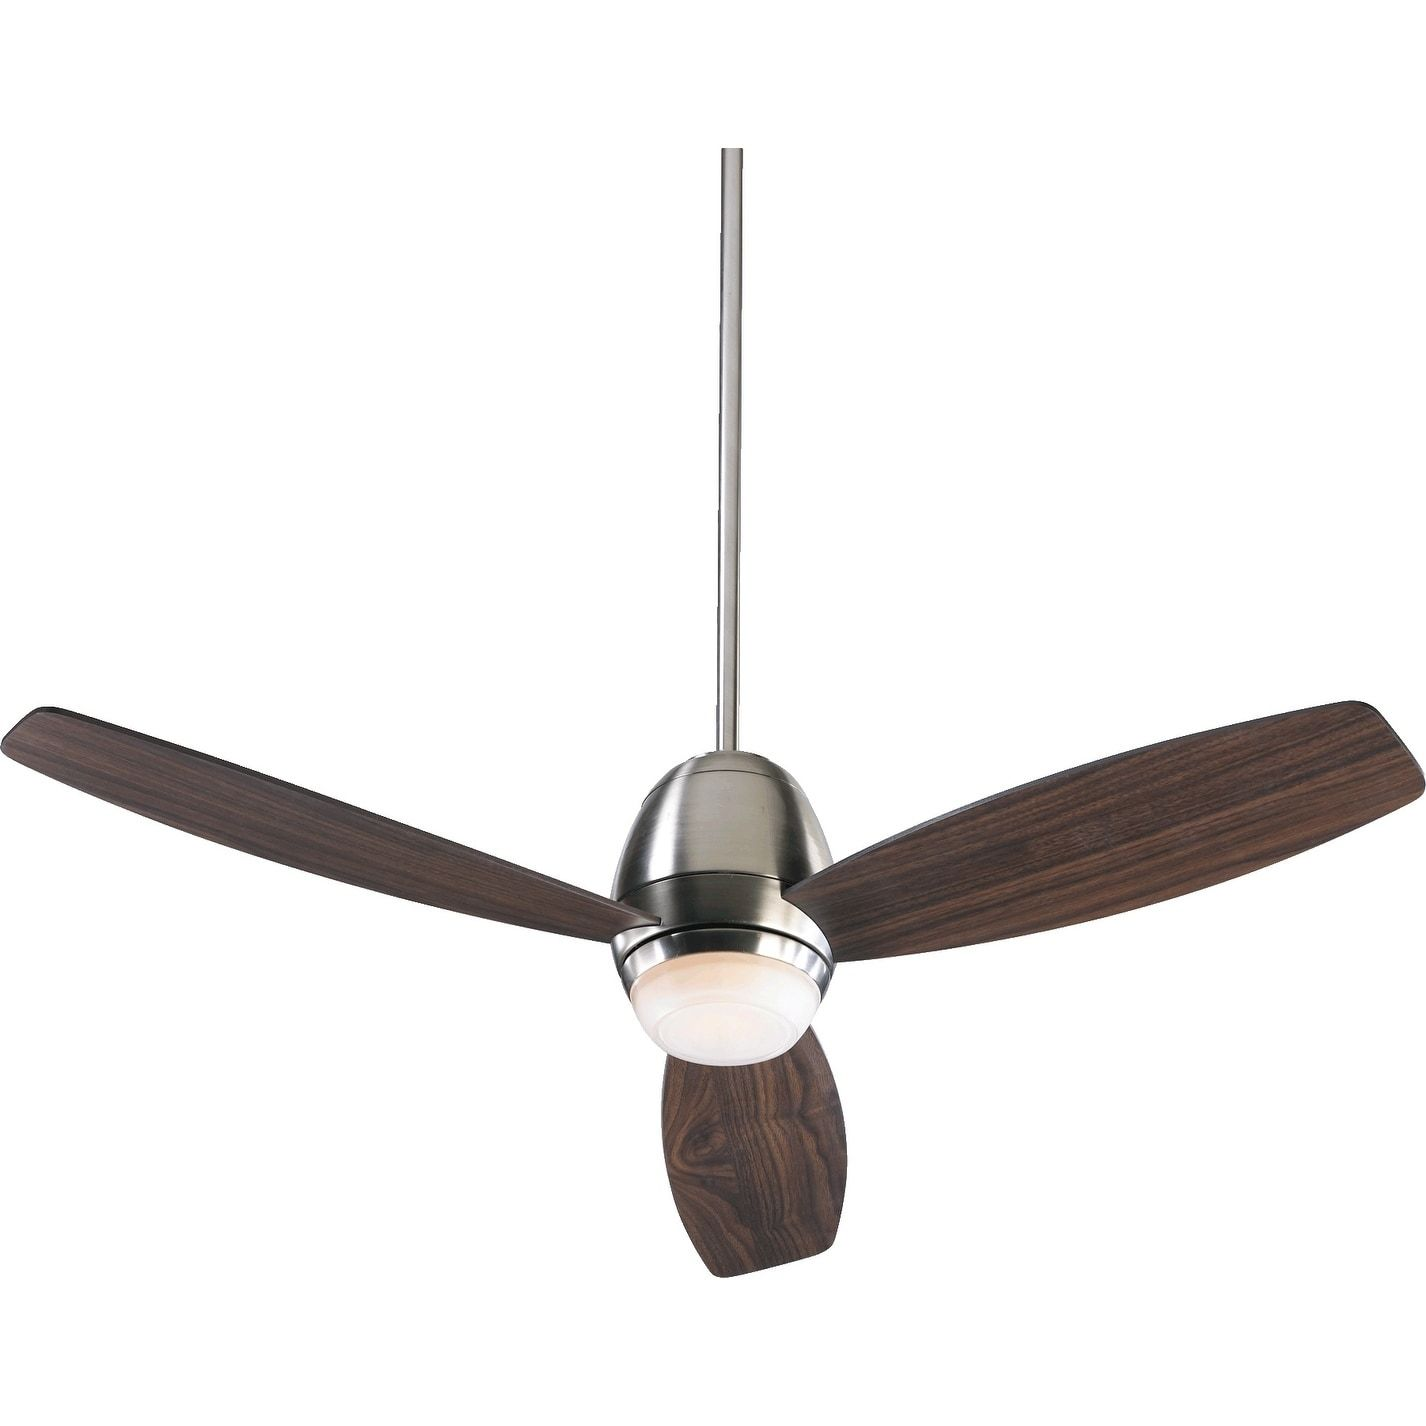 International Bronx 52 Contemporary Ceiling Fan with Integraded